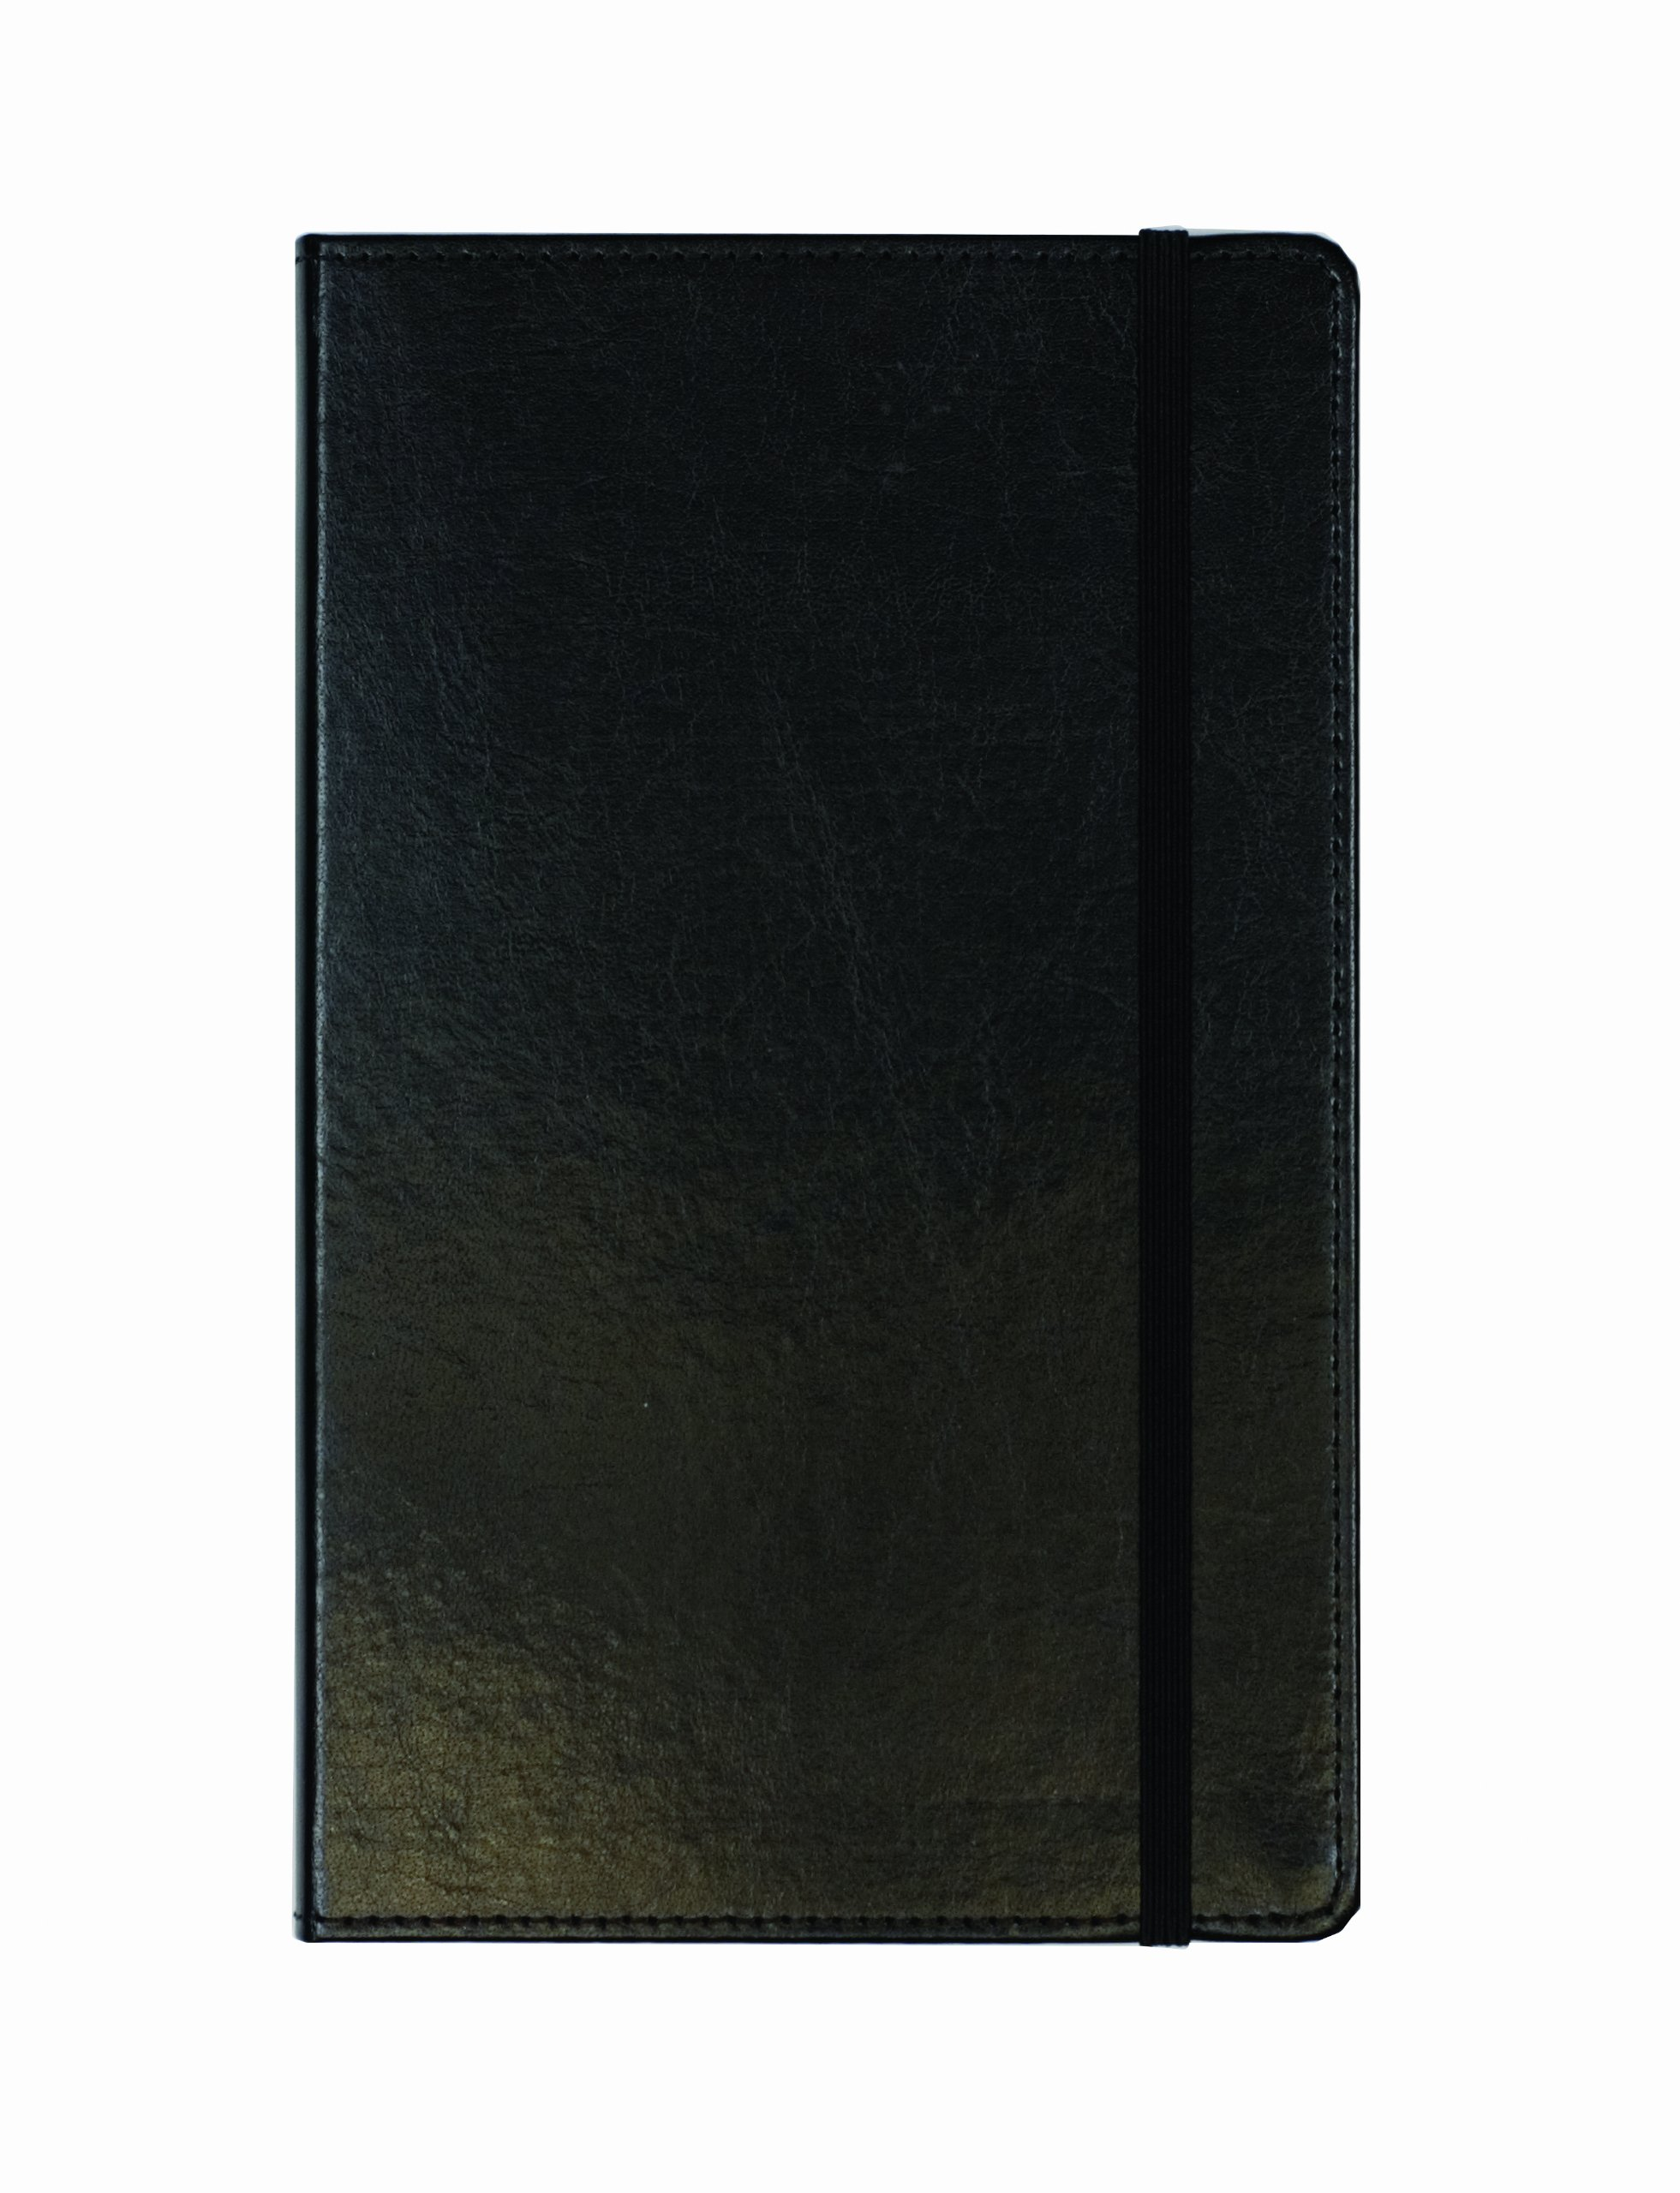 Markings by C.R. Gibson MJ5-4791 Genuine Bonded Leather Journal, By Markings, Smyth Sewn Binding, Ribbon Marker, Elastic Band Closure, Includes 240 Ruled Pages, Measures 5'' x 8.2'' - Large Black